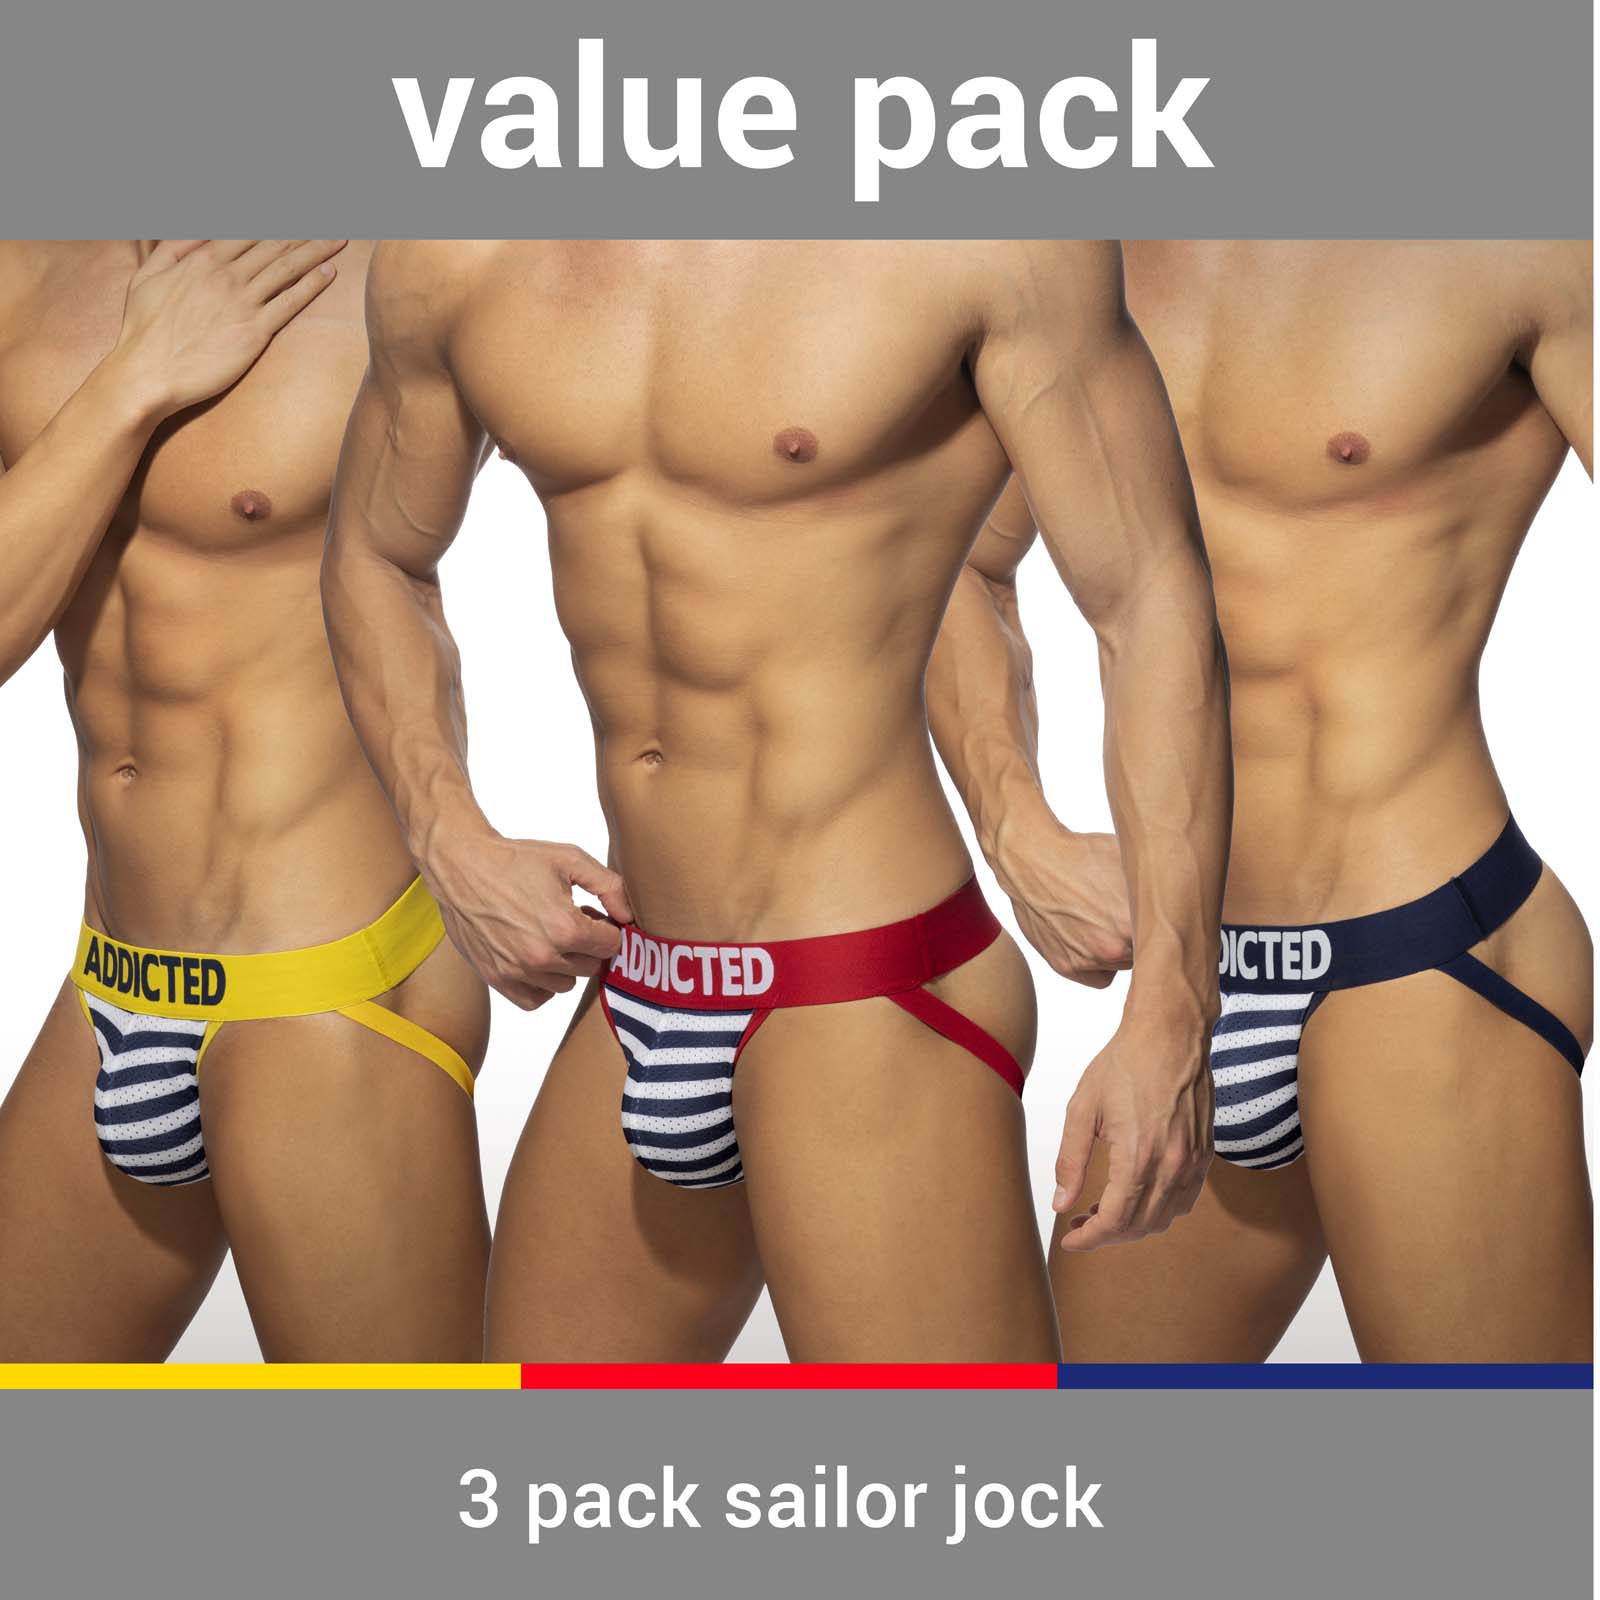 Pack of Jock Straps Addicted AD966PP